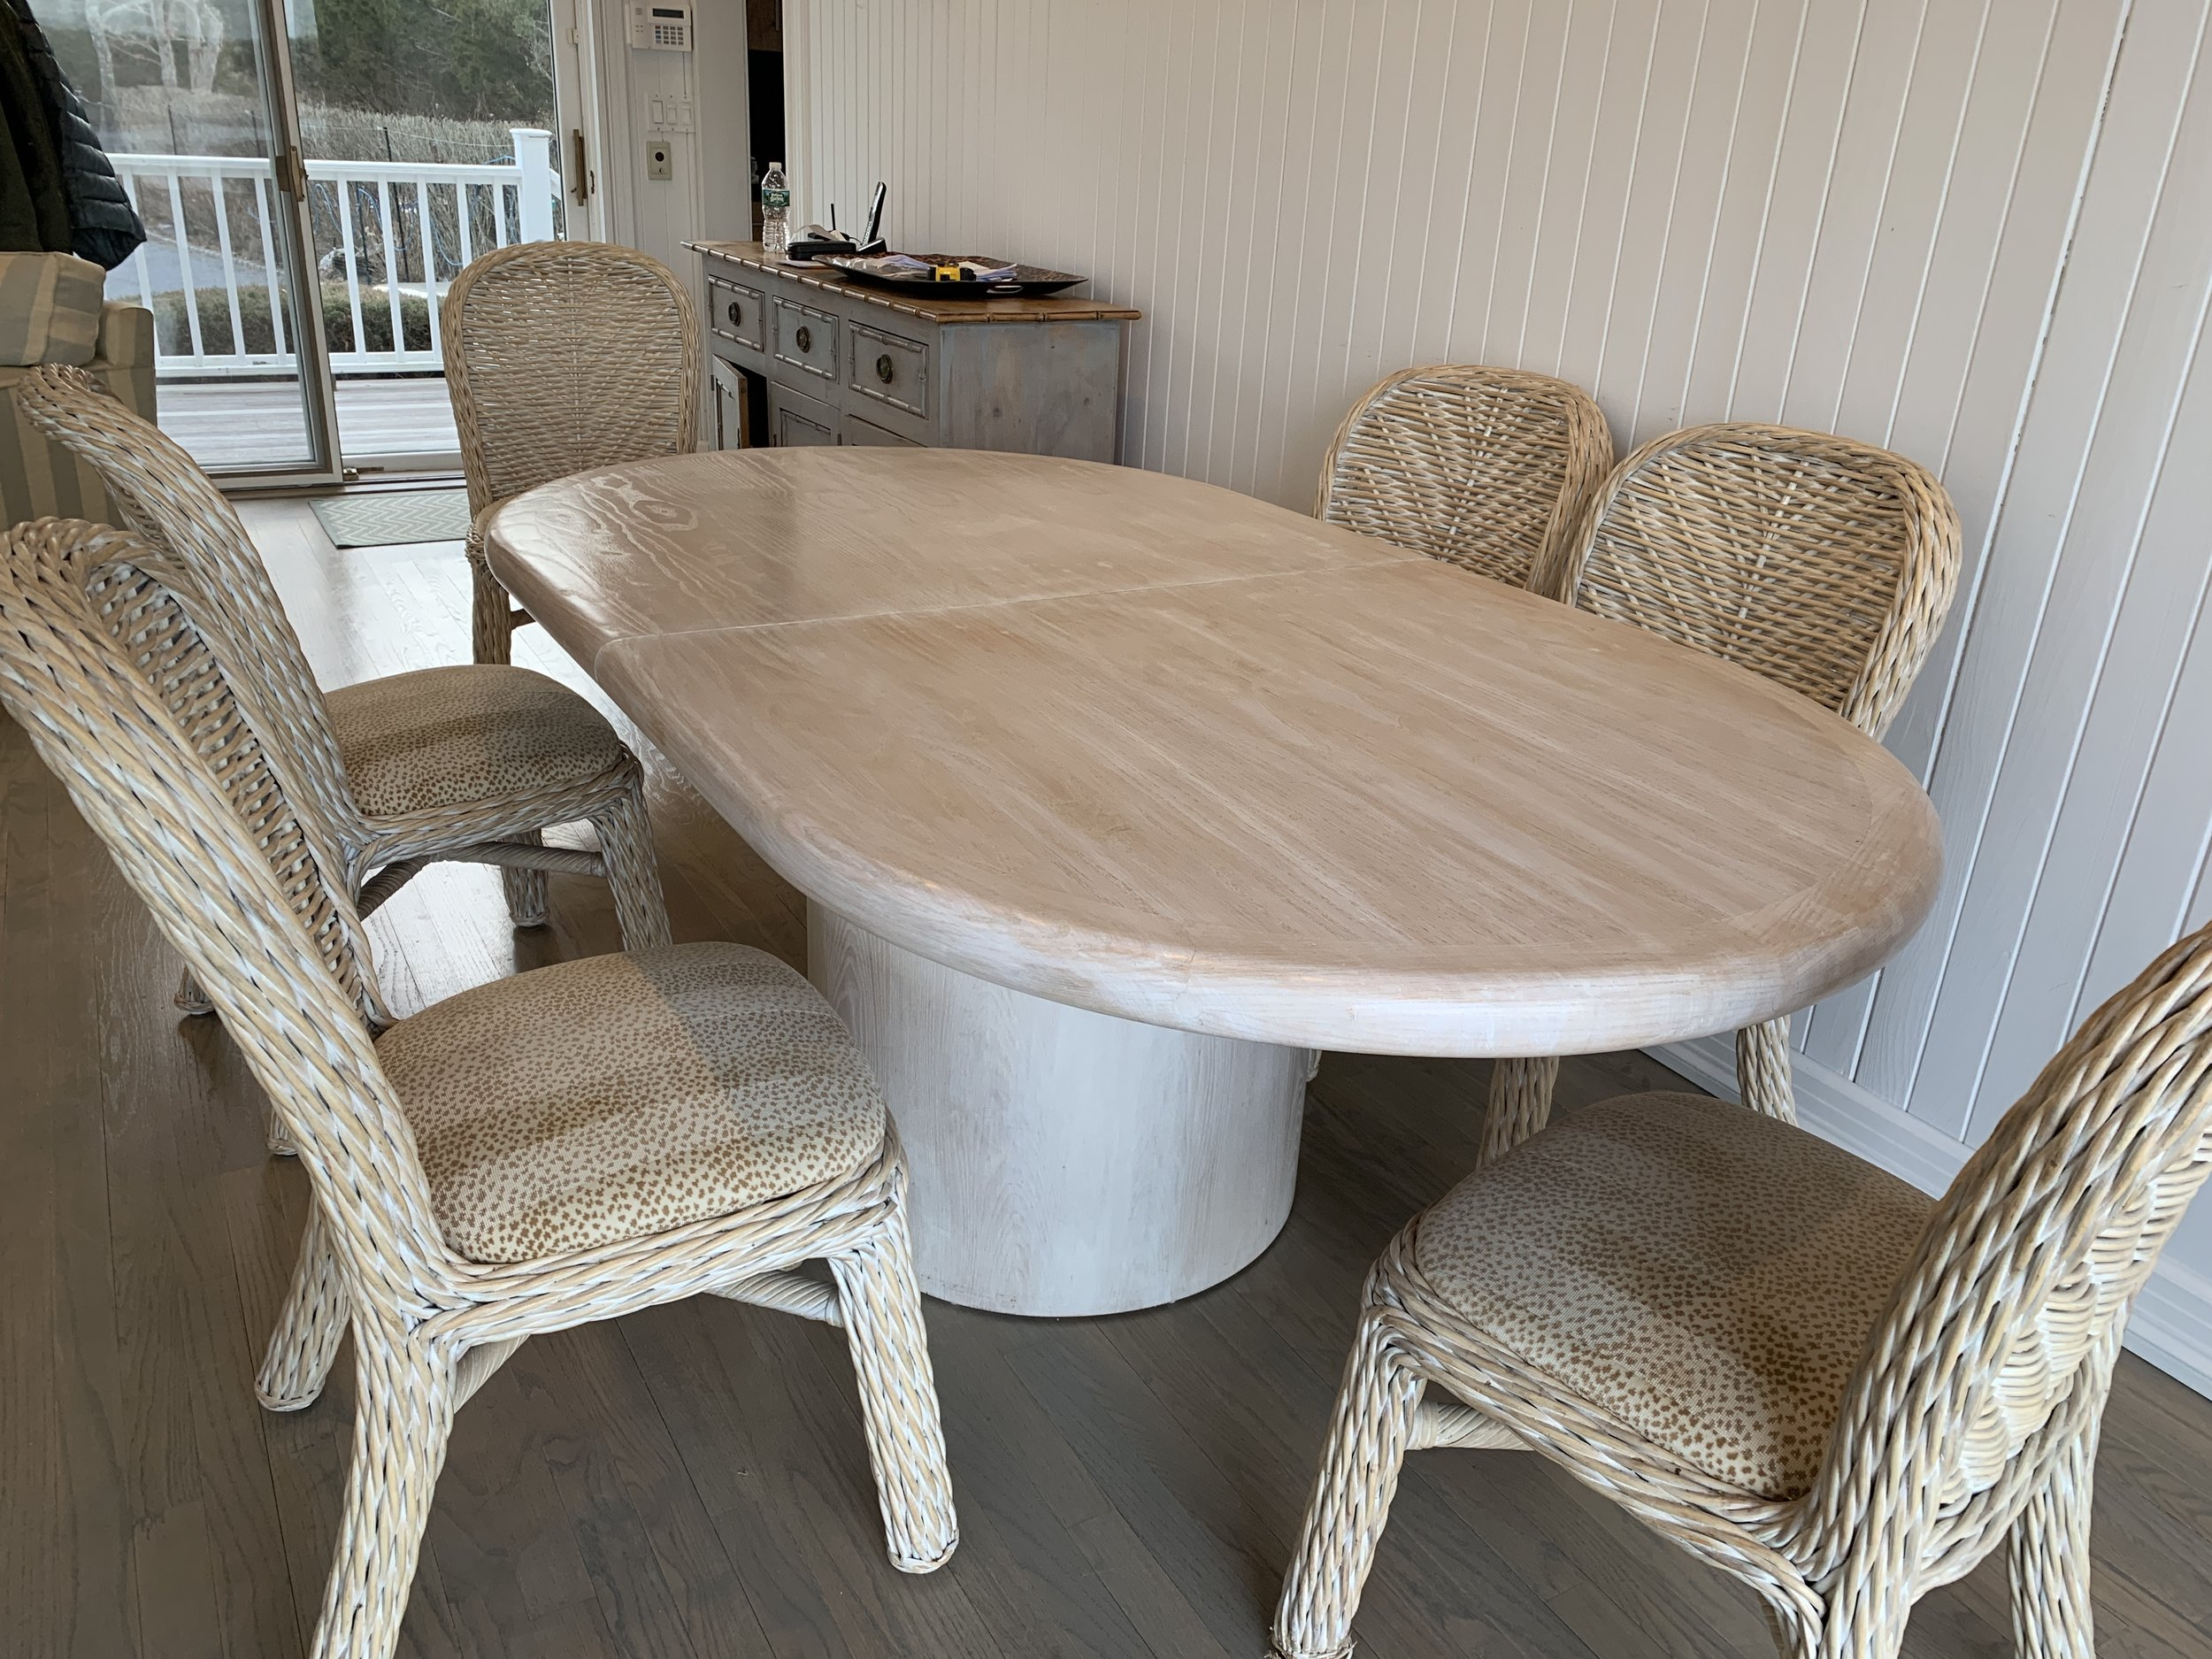 Dining table and chairs.jpg